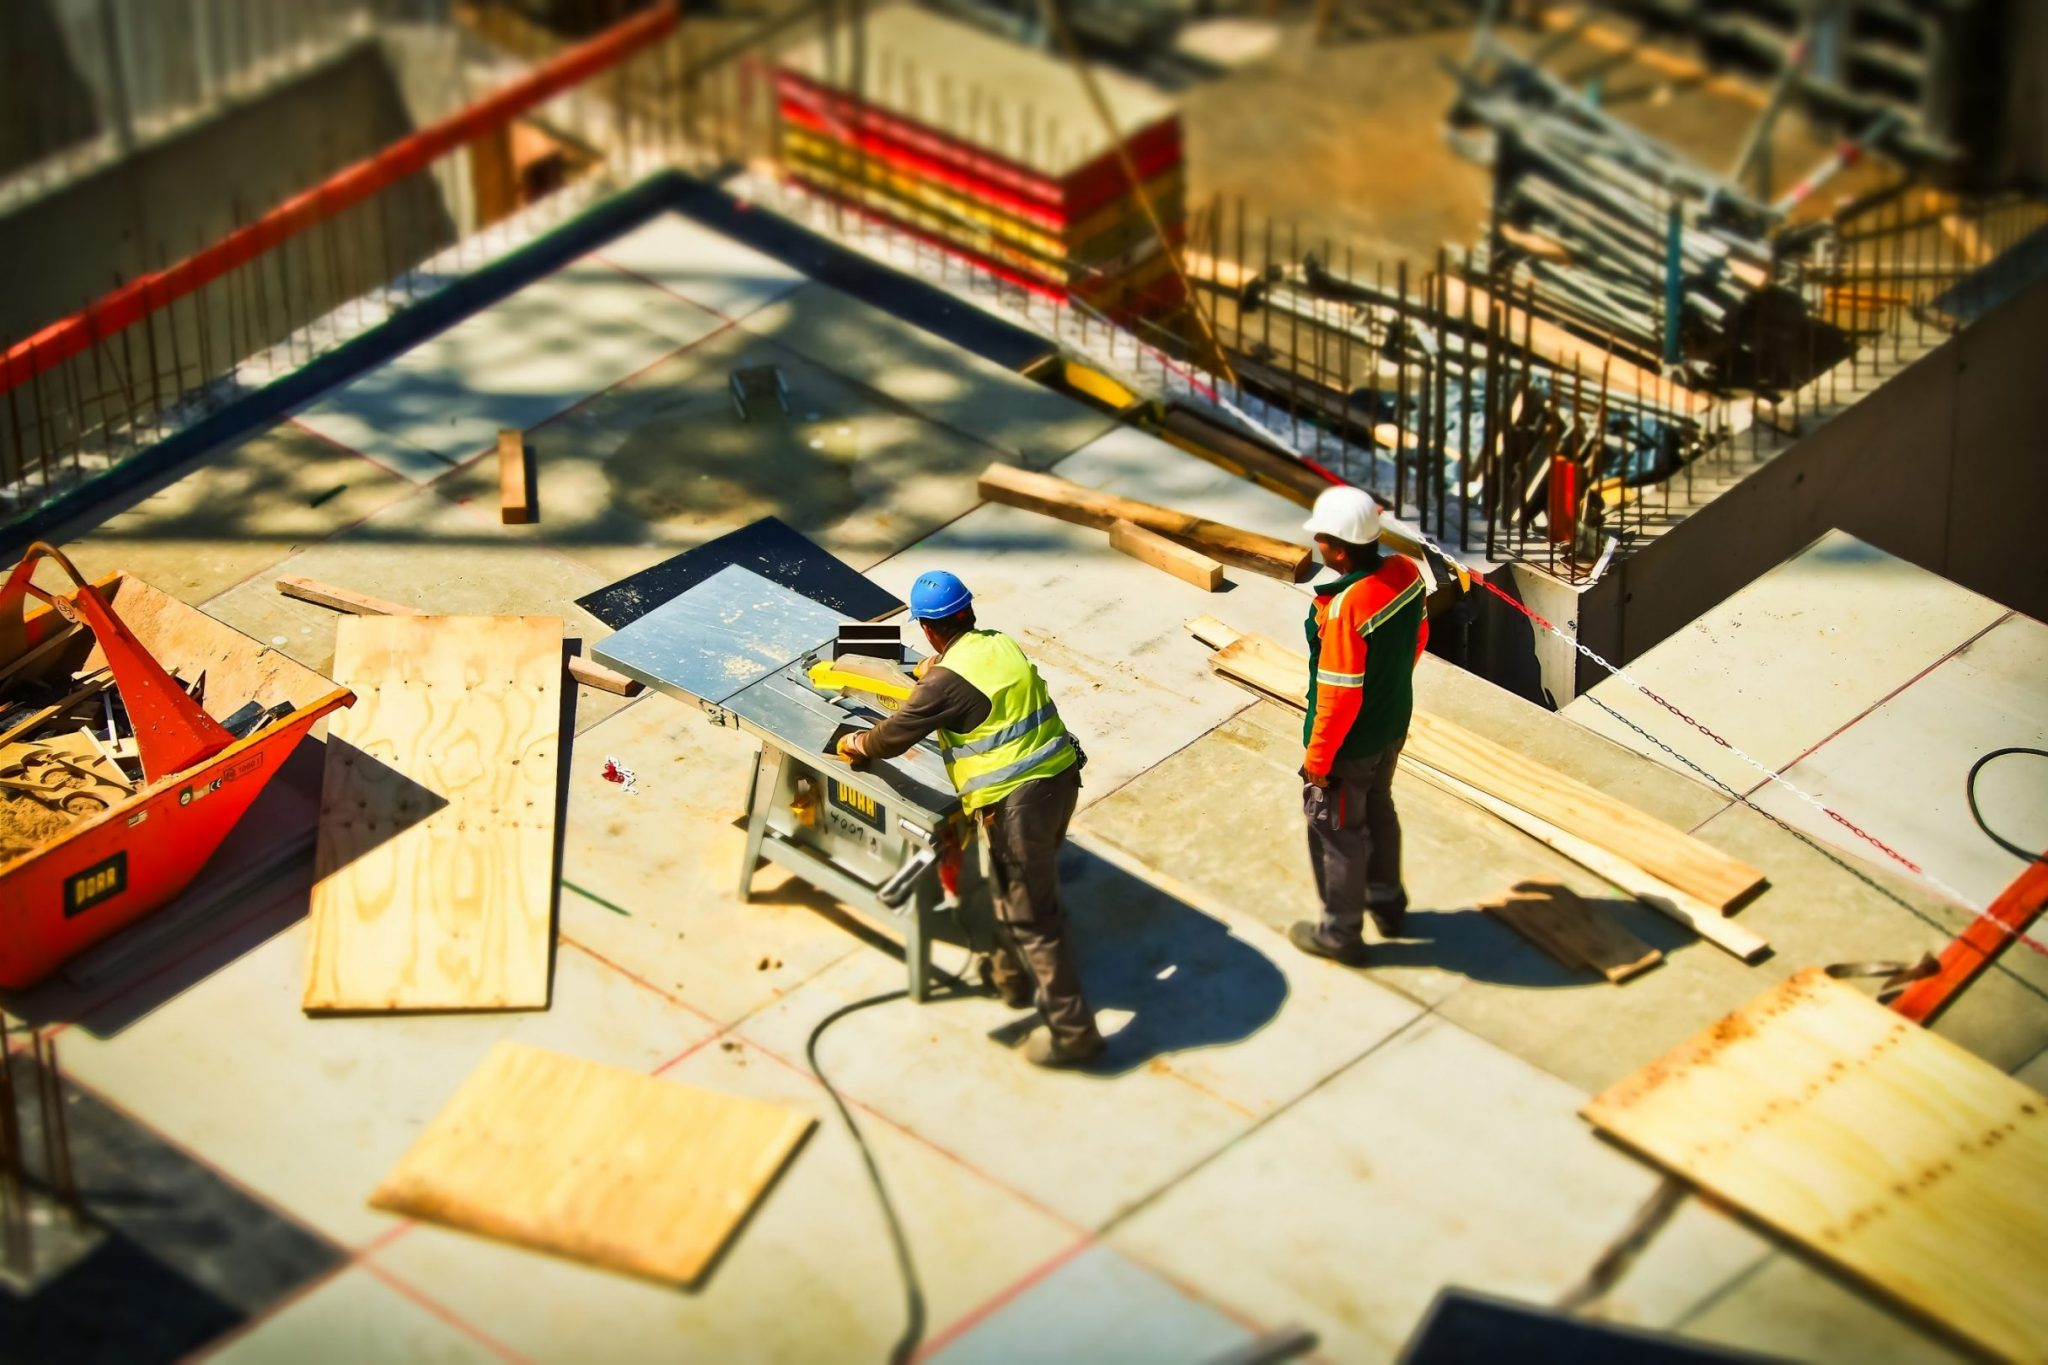 A birds eye image of two construction workers.